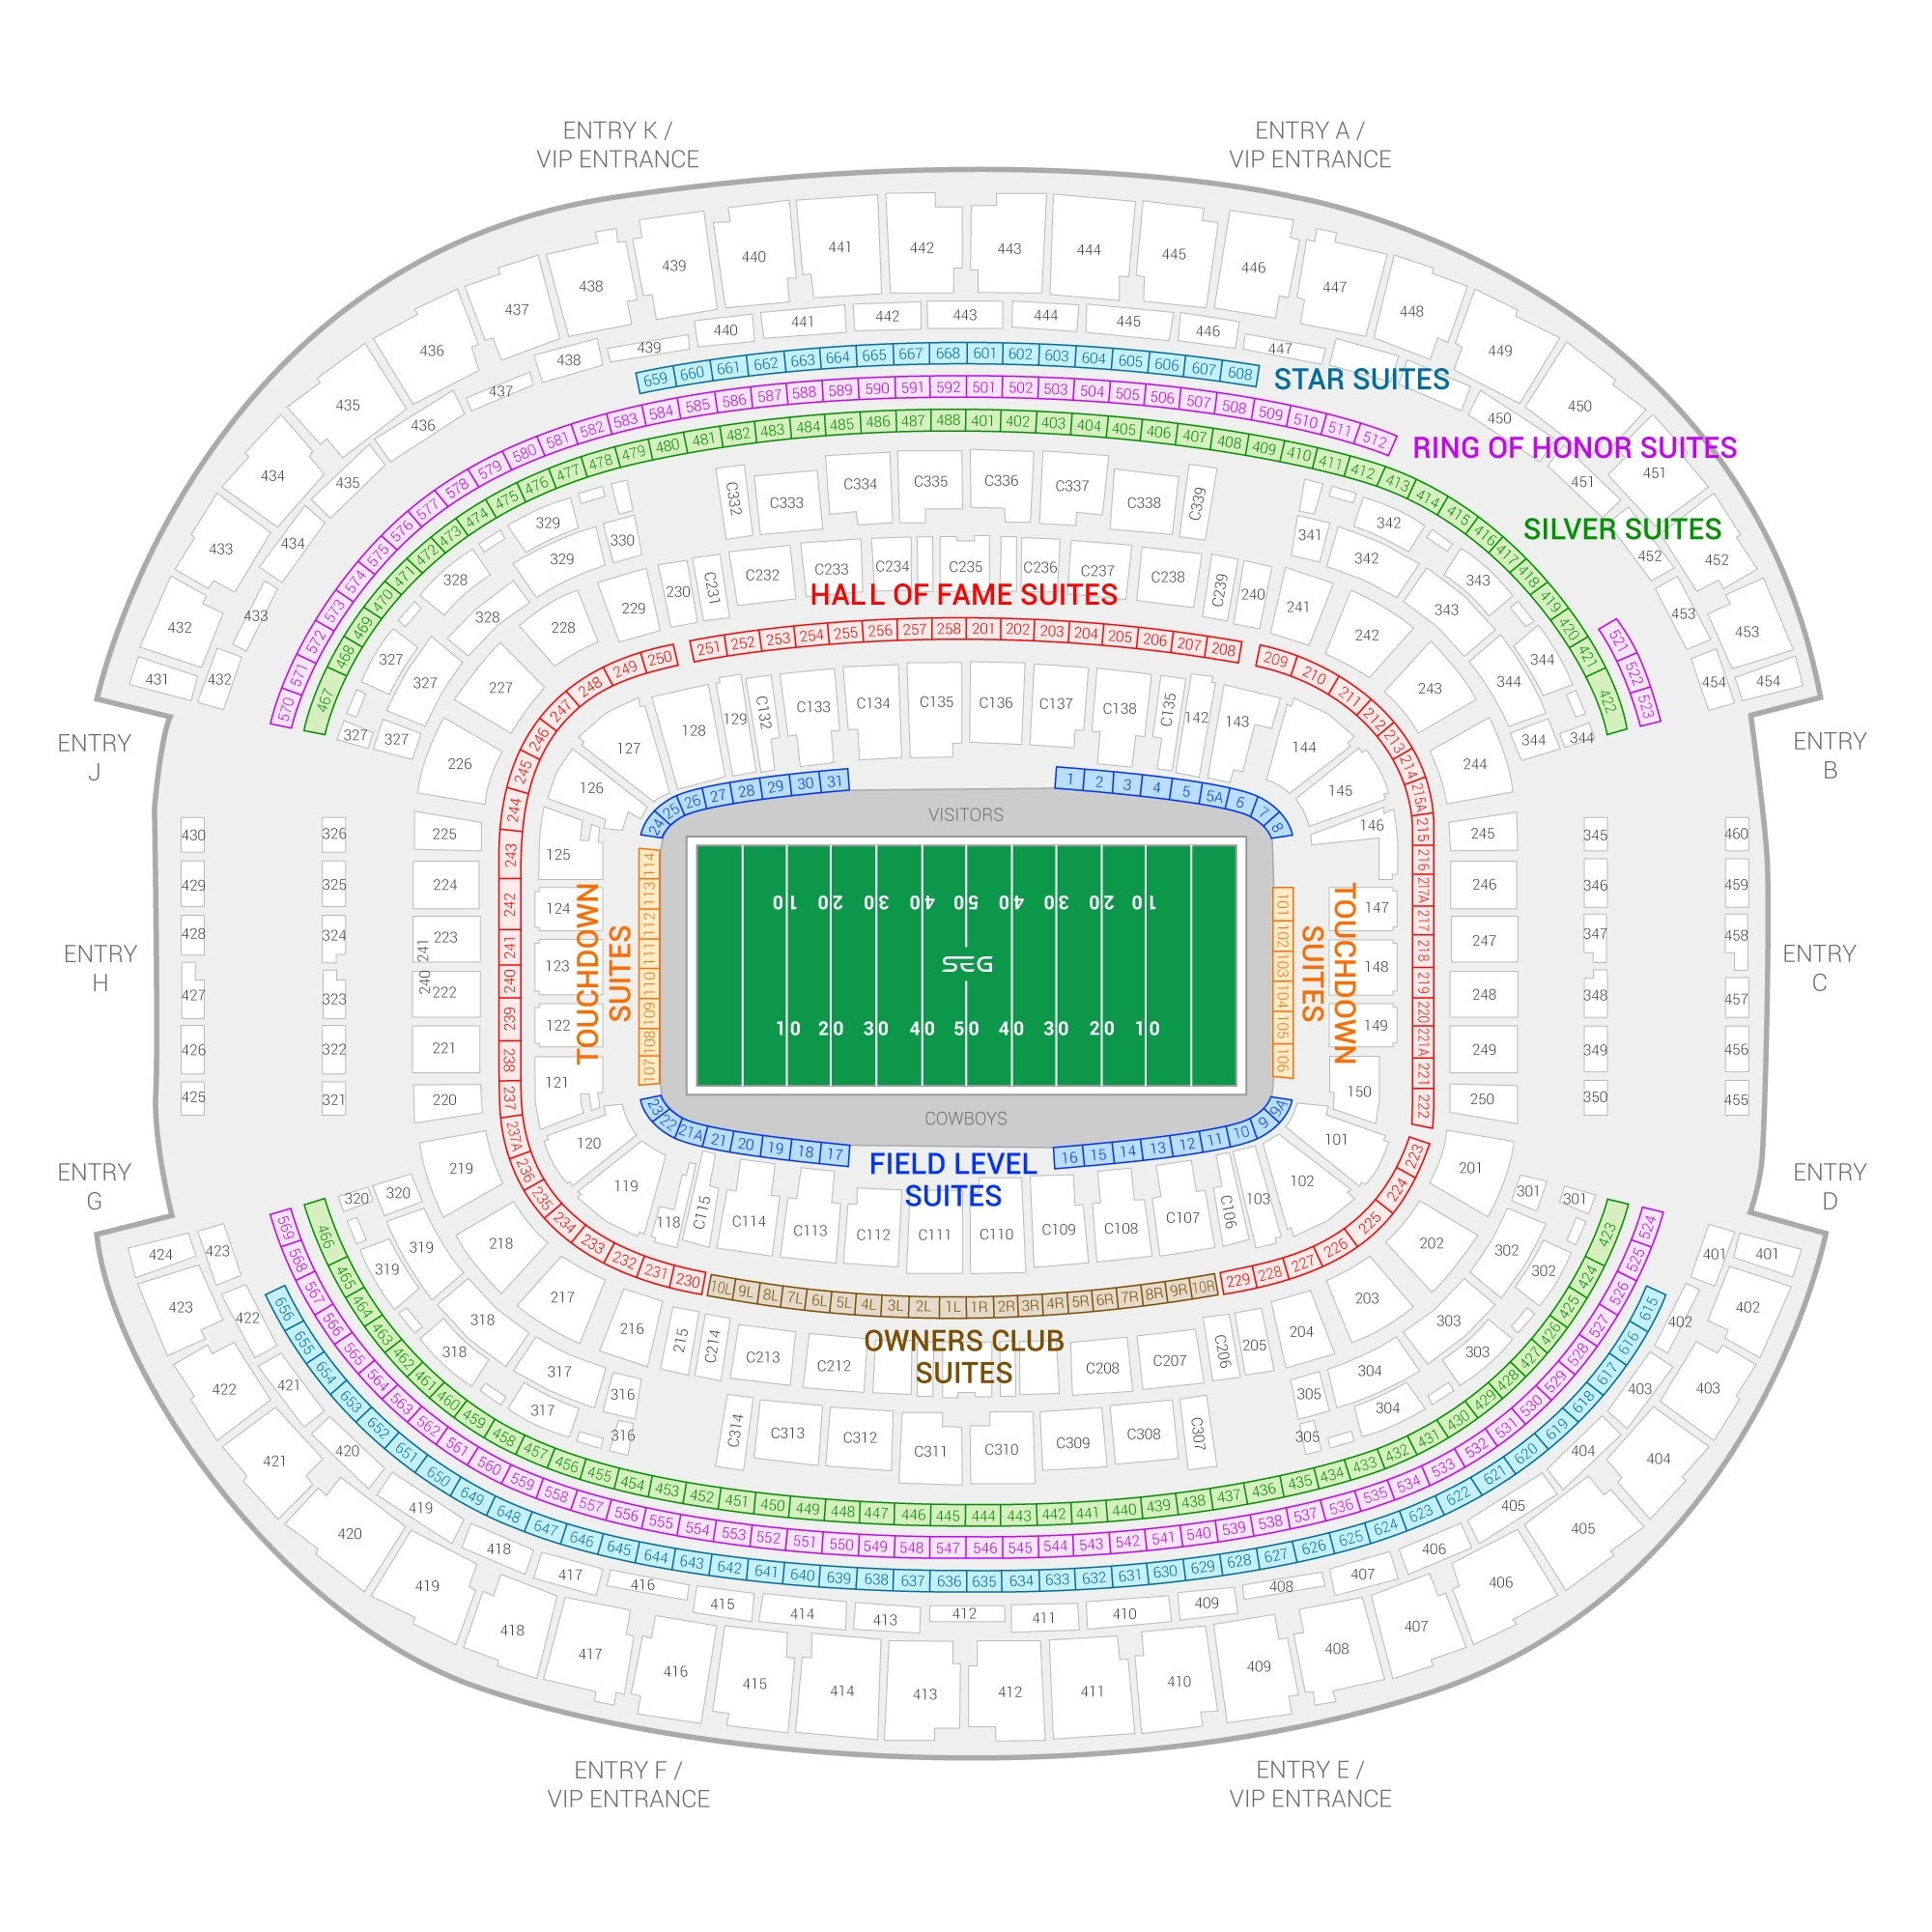 Dallas Cowboys Suite Rentals | At&t Stadium with Super Bowl Seating Chart 2018